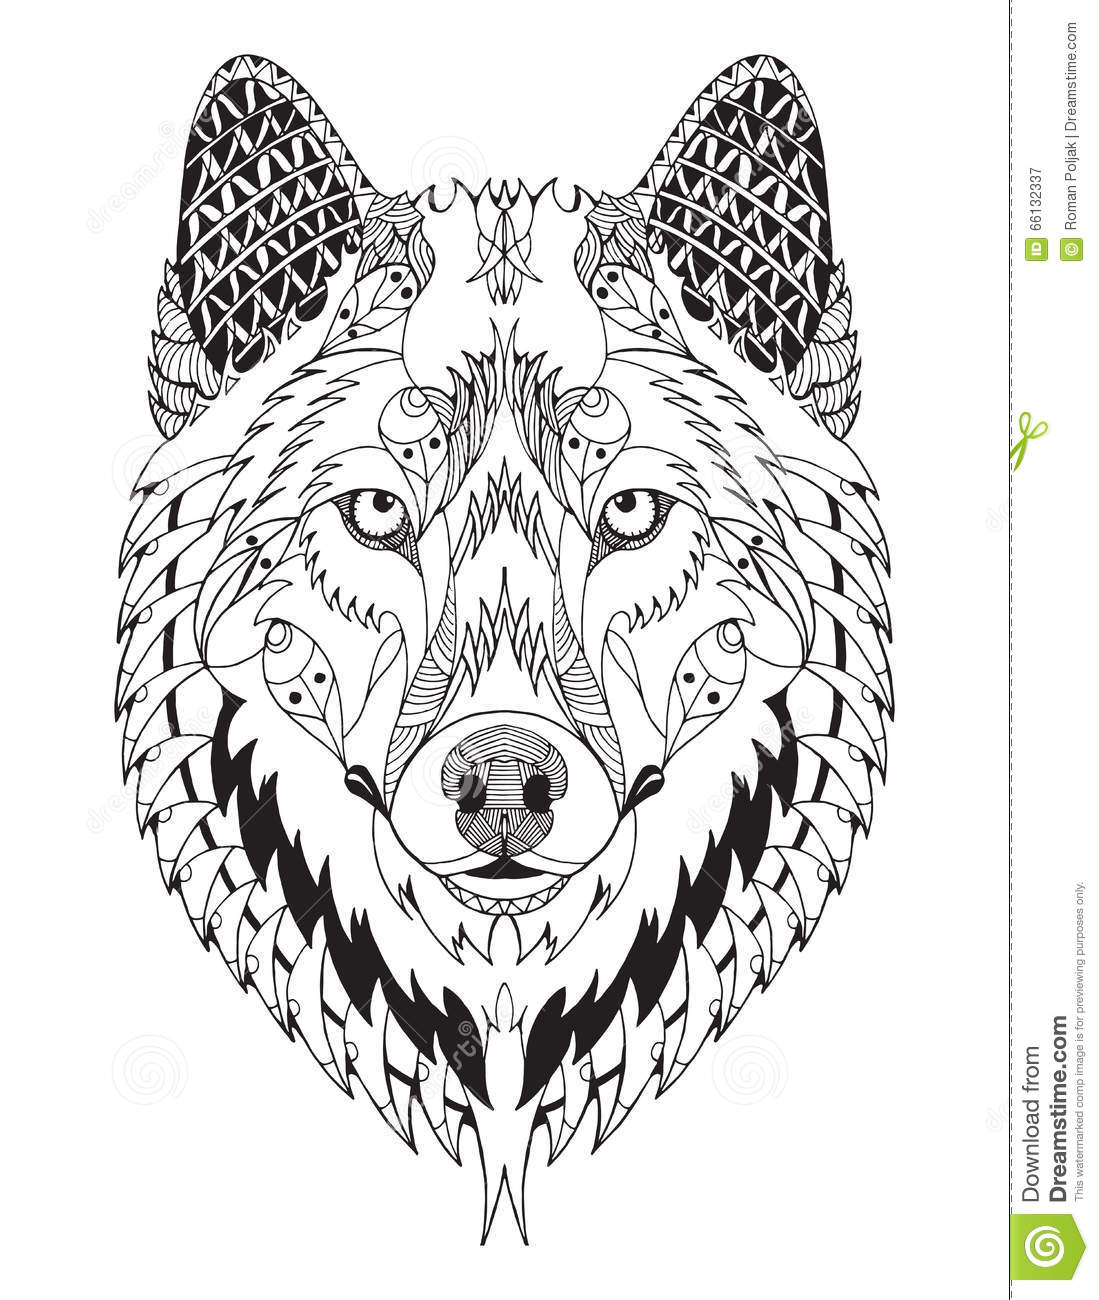 gray wolf head zentangle stylized vector illustration freehand pencil hand drawn pattern zen art ornate vector print t shirts 66132337 including free coloring pages for adults only 1 on free coloring pages for adults only furthermore free coloring pages for adults only 2 on free coloring pages for adults only as well as free coloring pages for adults only 3 on free coloring pages for adults only also with free coloring pages for adults only 4 on free coloring pages for adults only